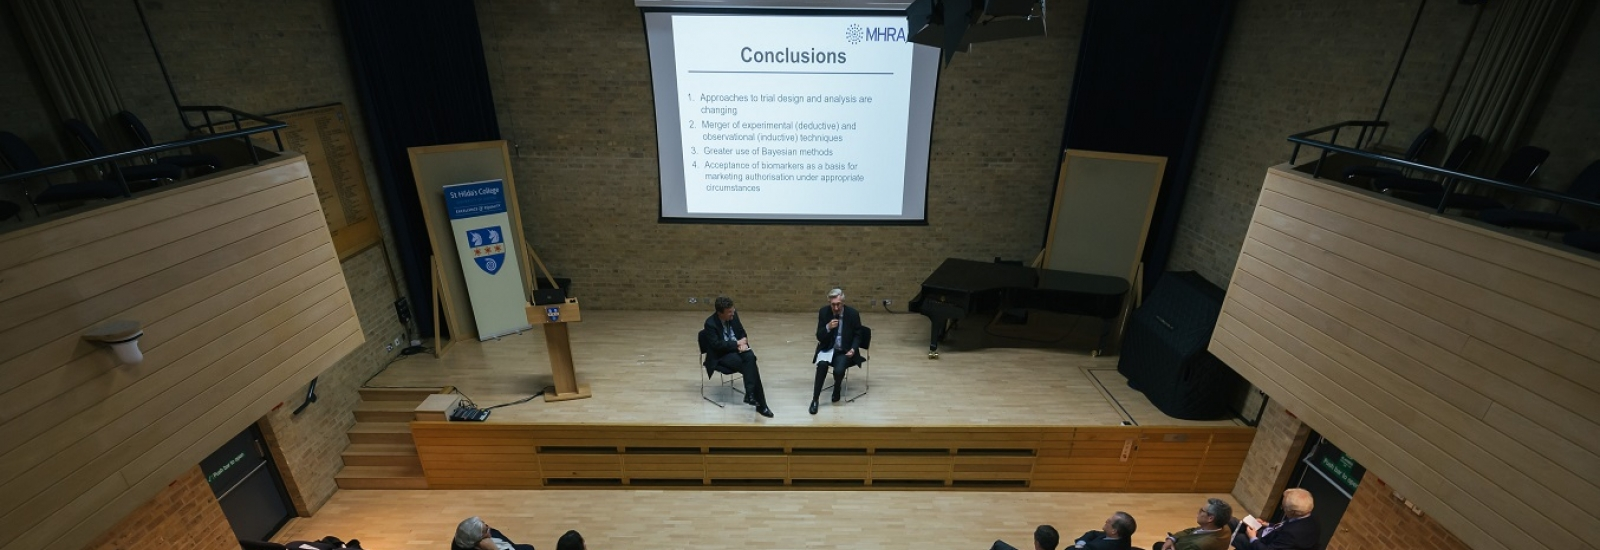 Professor Duncan Richards and Sir Michael Rawlins at the inaugural lecture for the Climax Centre for Clinical Therapeutics Research at St Hilda's College, Oxford